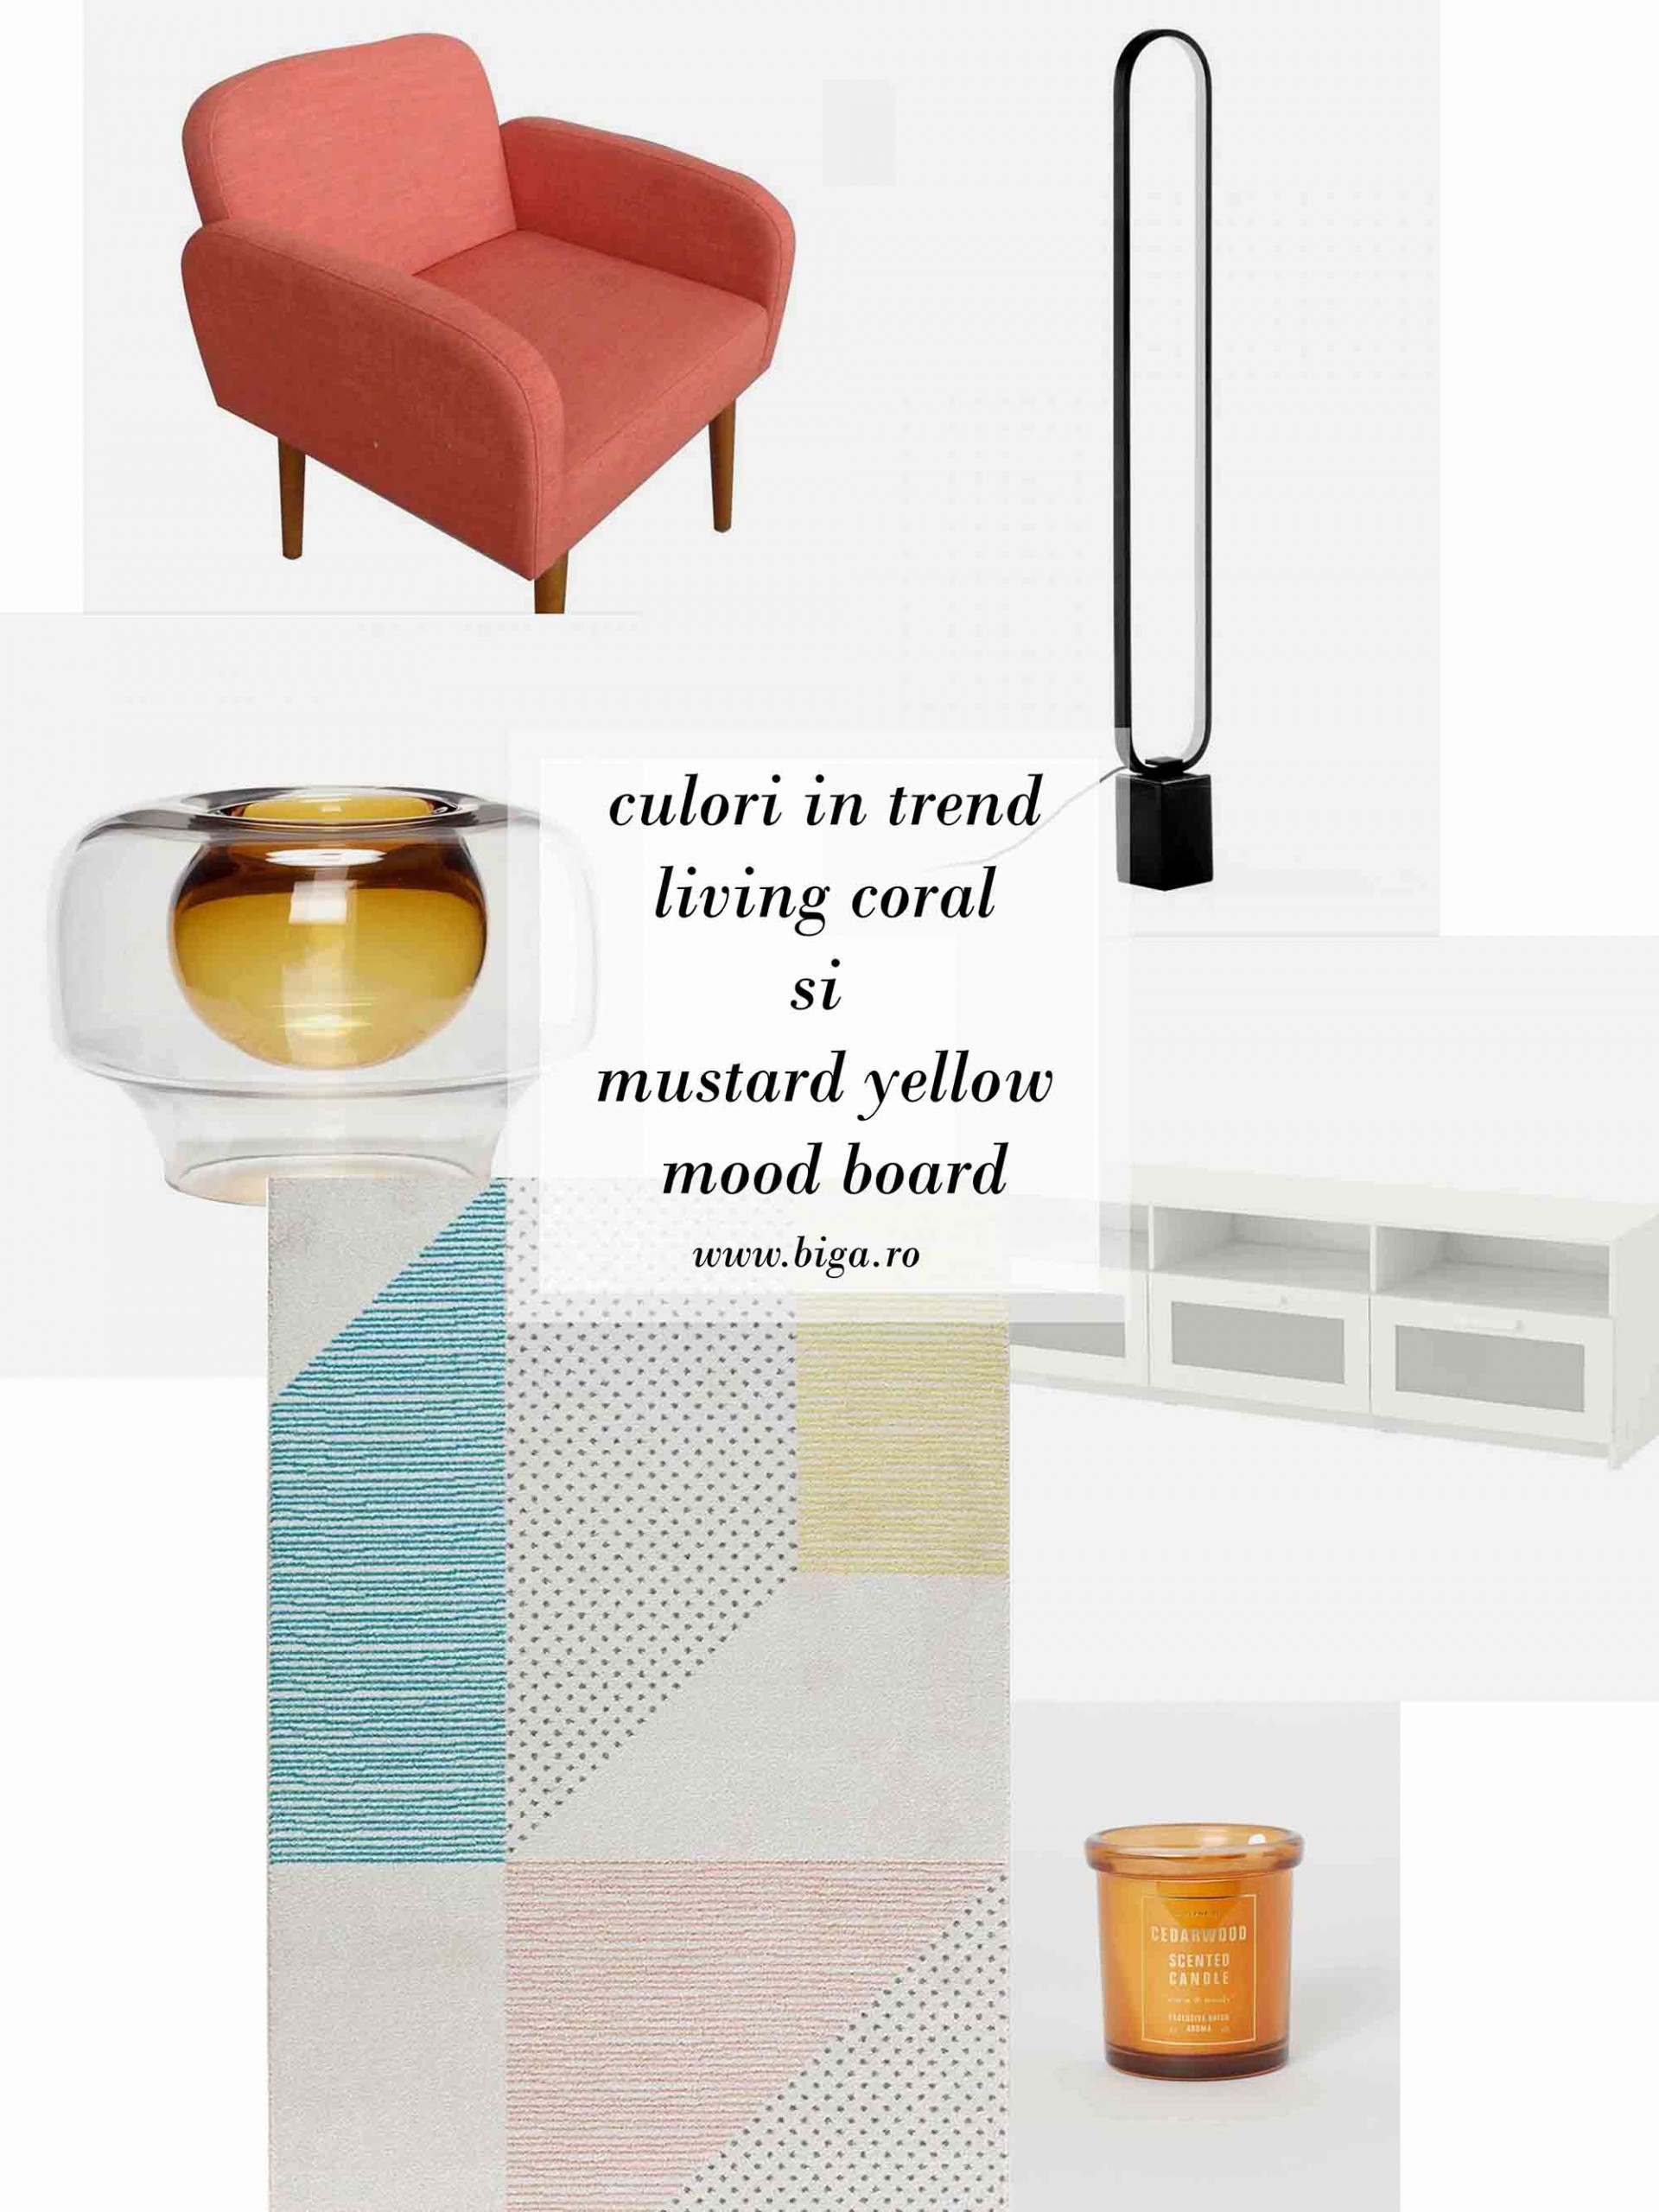 living coral si mustard yellow